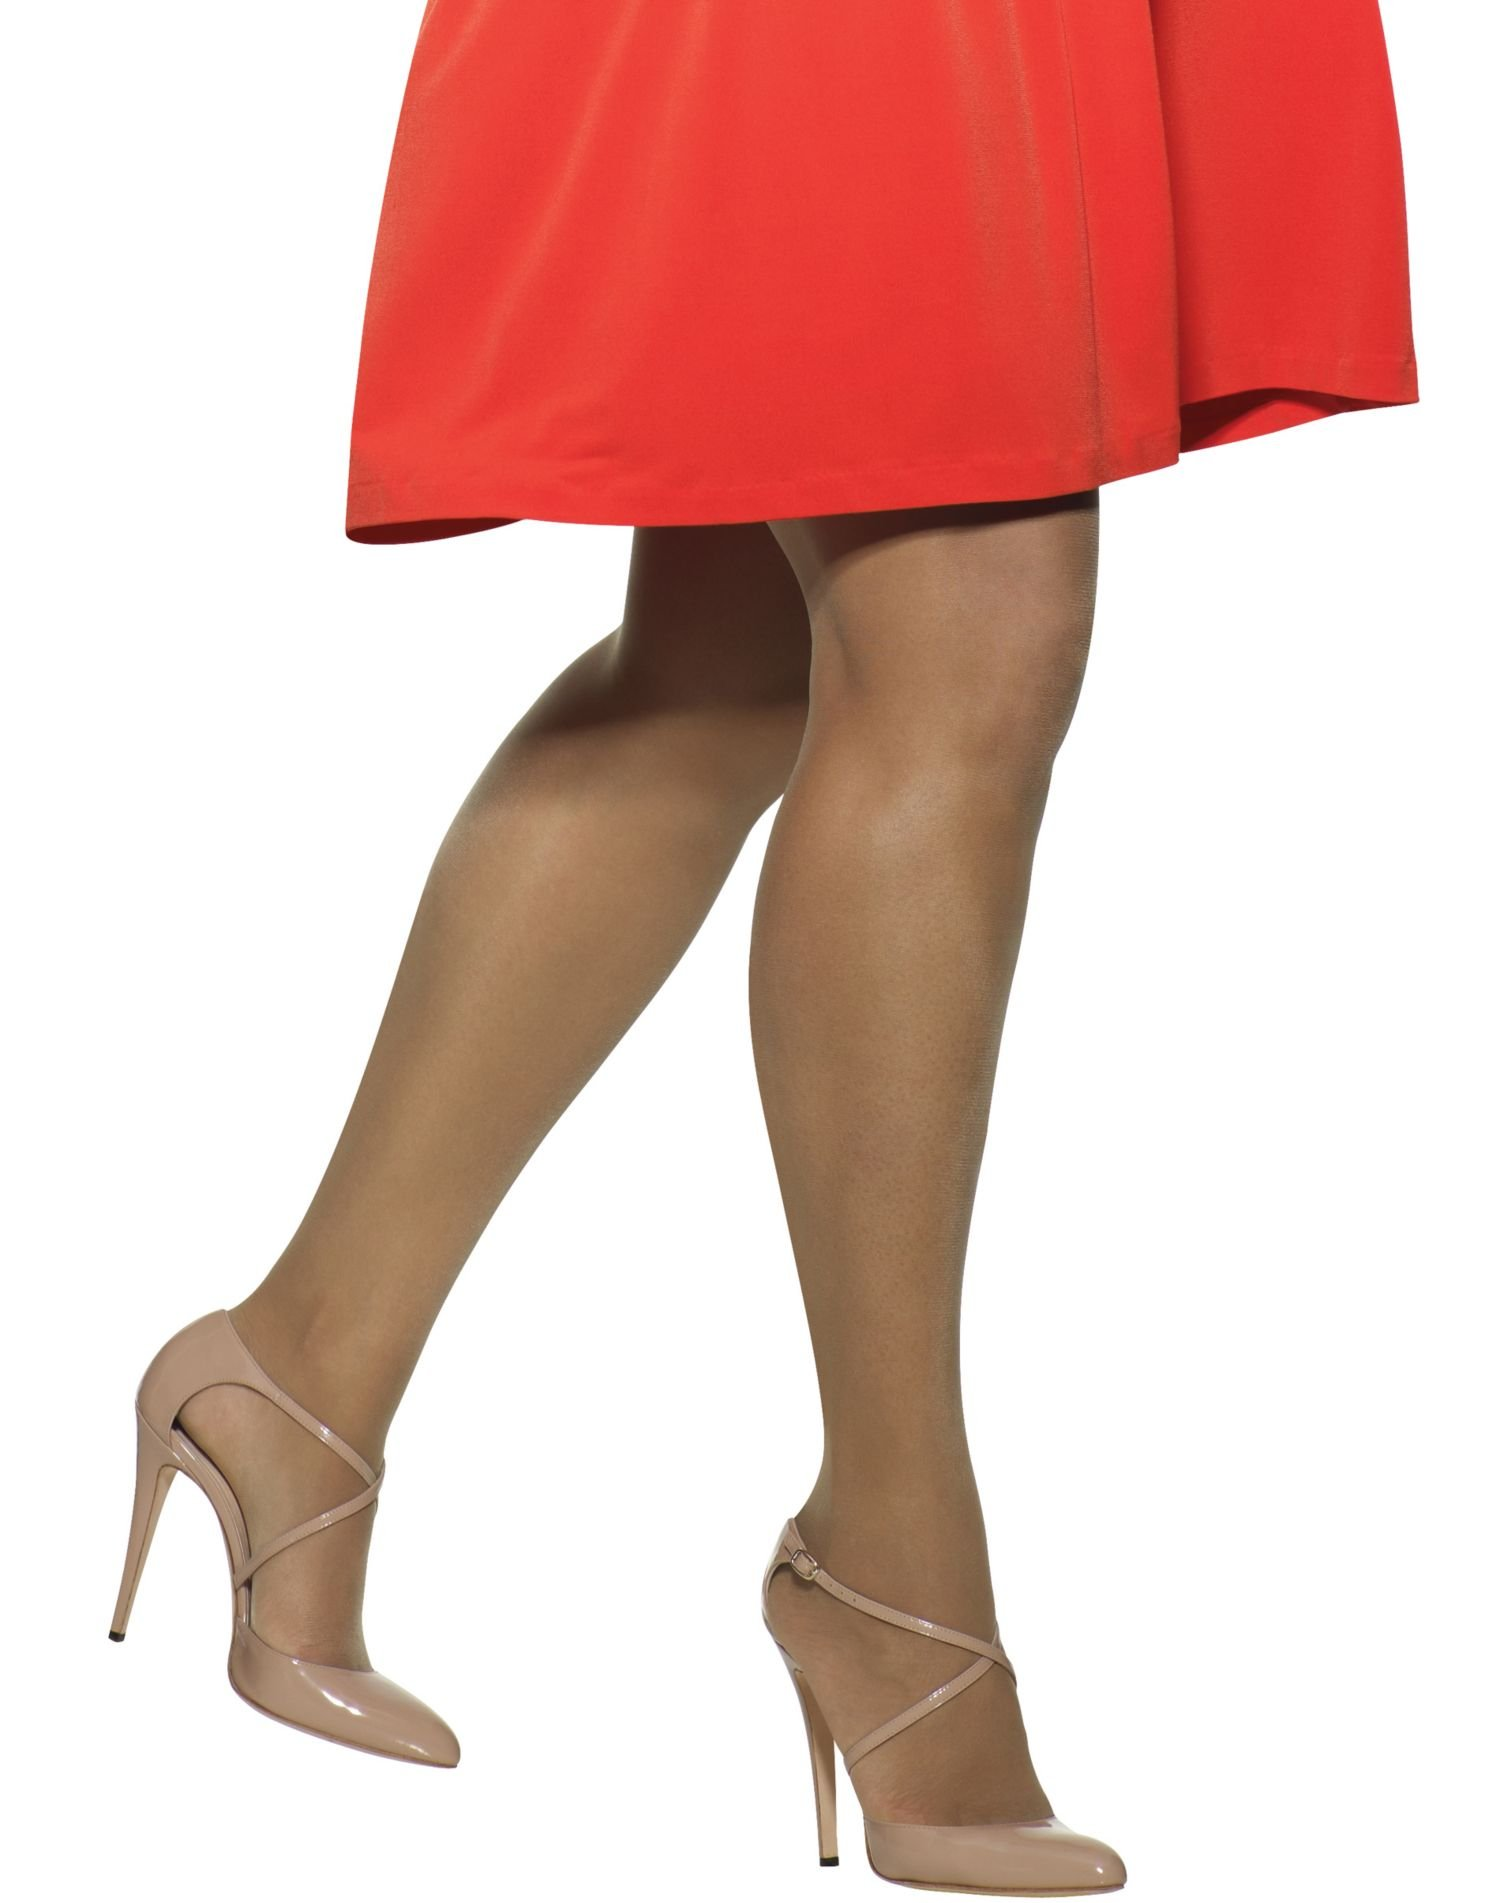 Hanes Plus Size Silk Reflections Pantyhose, 2/Plus, Barely There